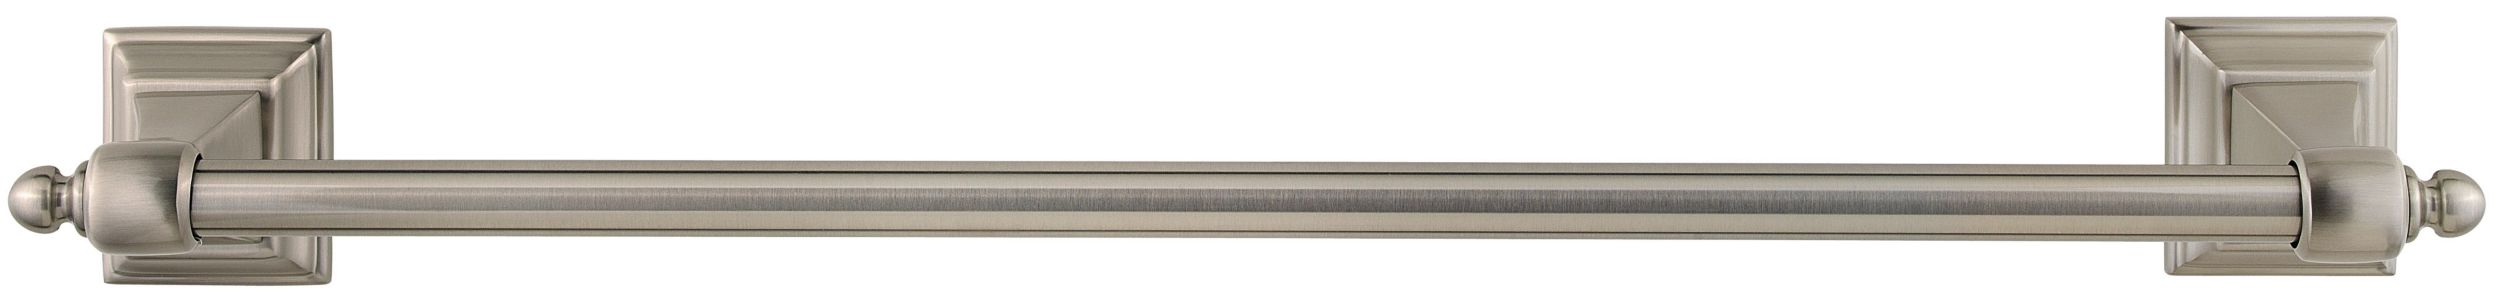 "Stonegate 18"" Towel Bar"